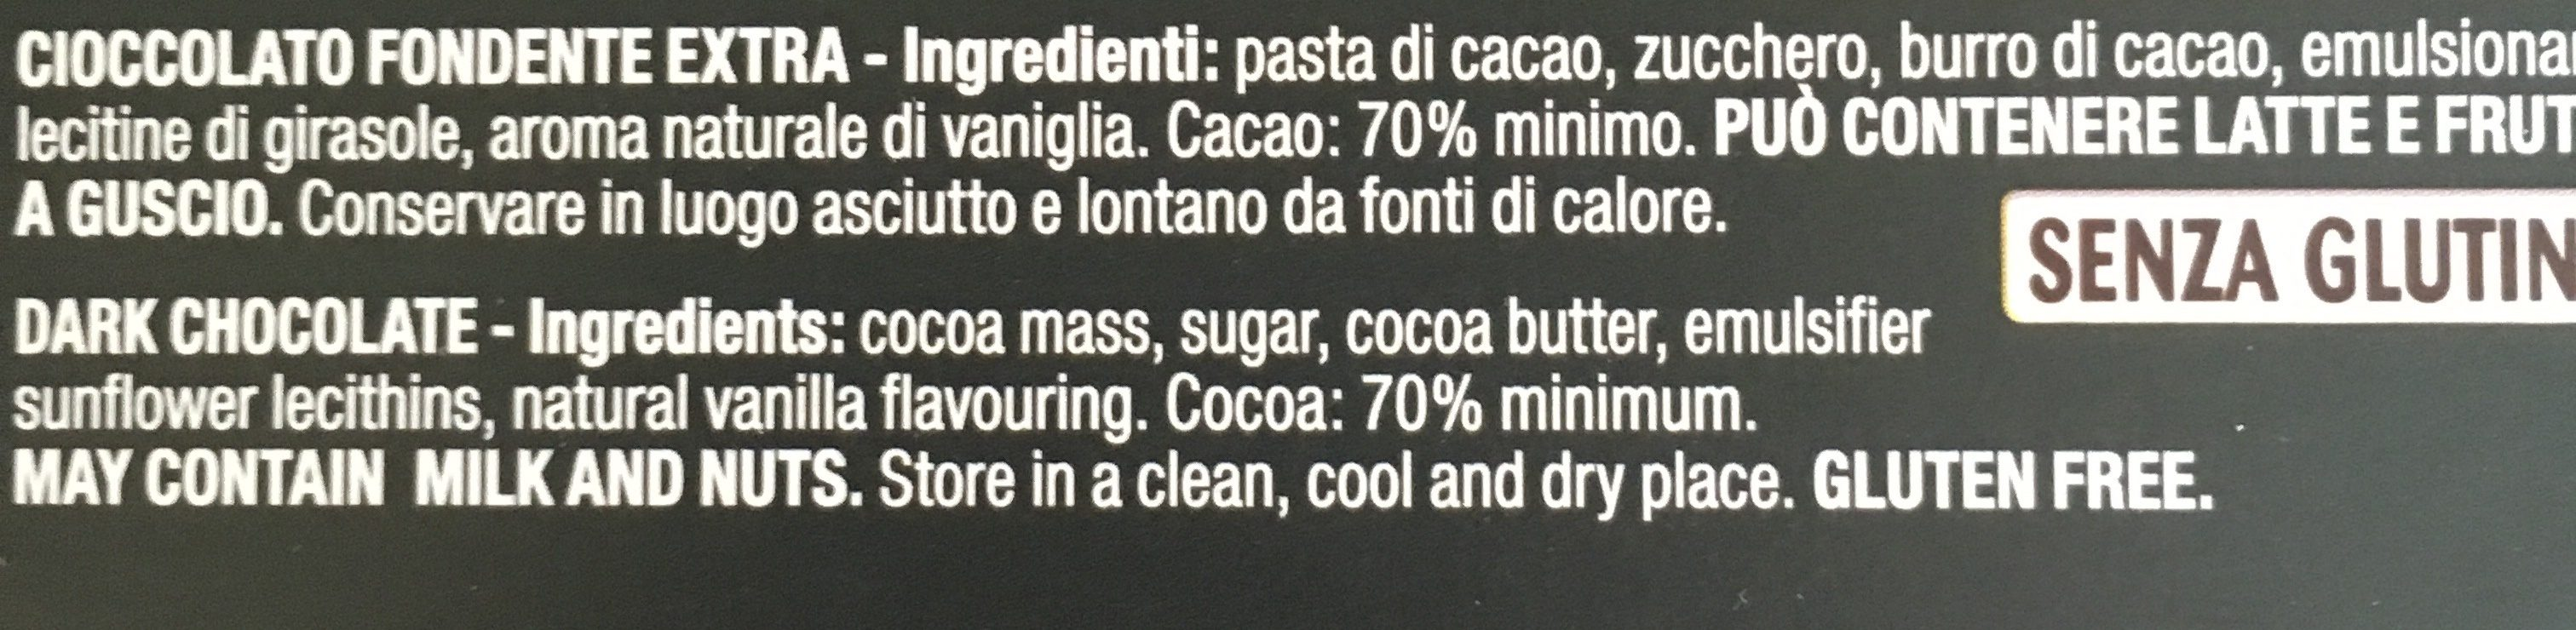 Nero Fondente Extra 70% - Ingredienti